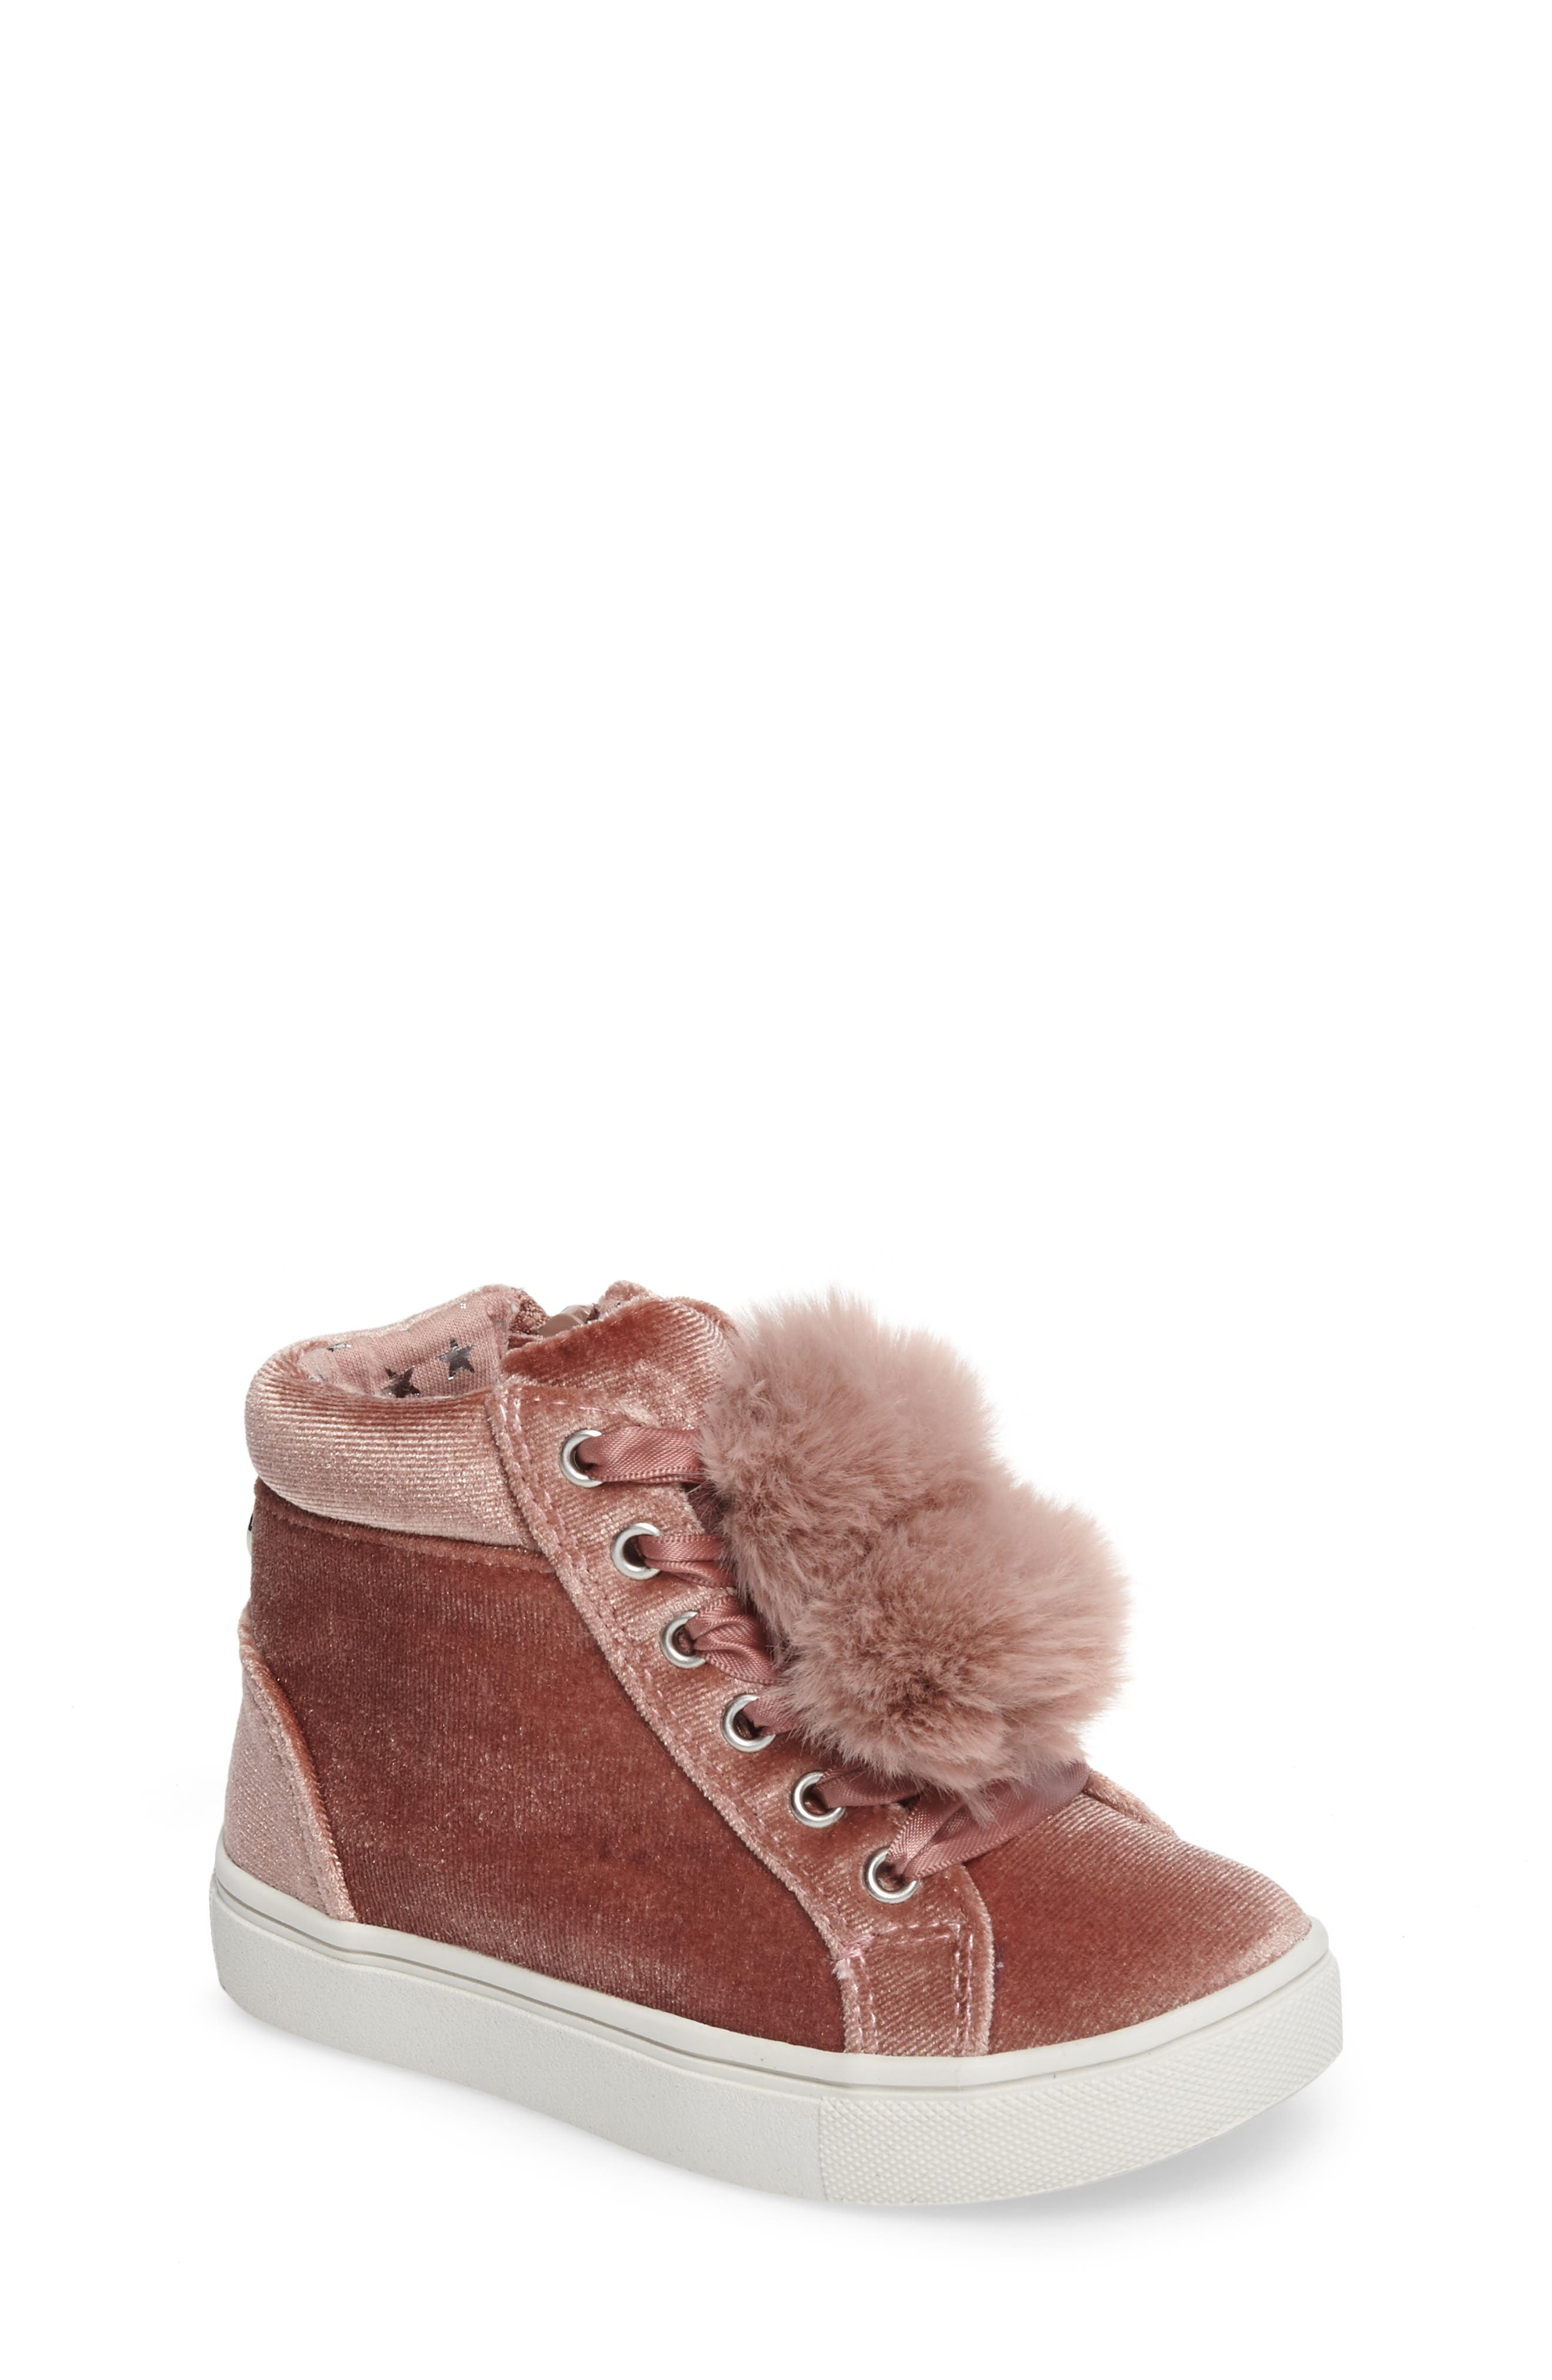 Steve Madden Brielle Faux Fur High Top Sneaker (Toddler)